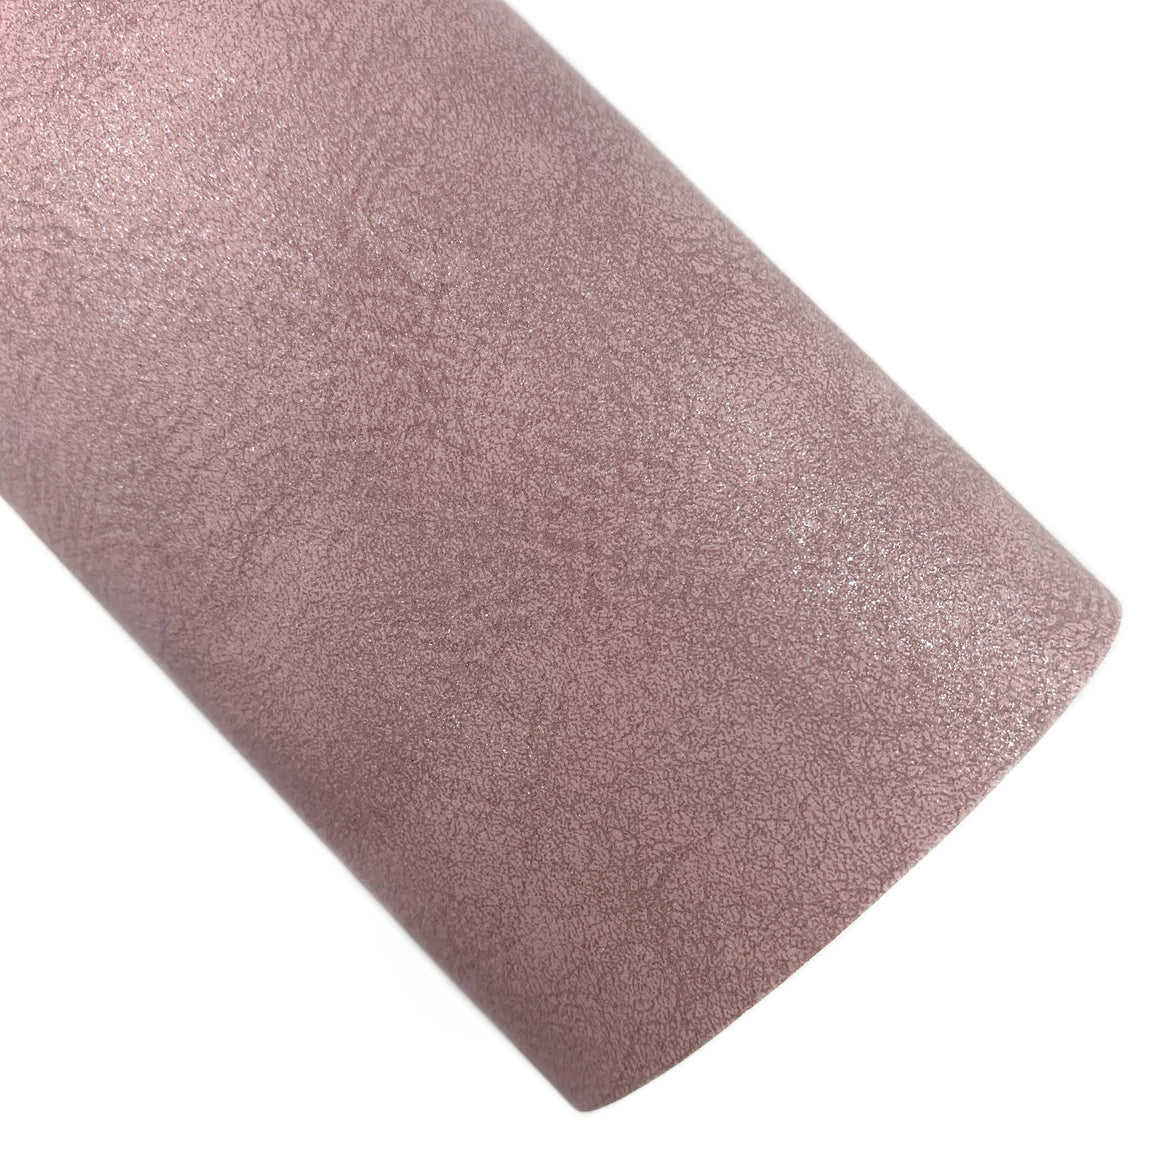 Dusty Rose Aged Shimmer Vegan Leather